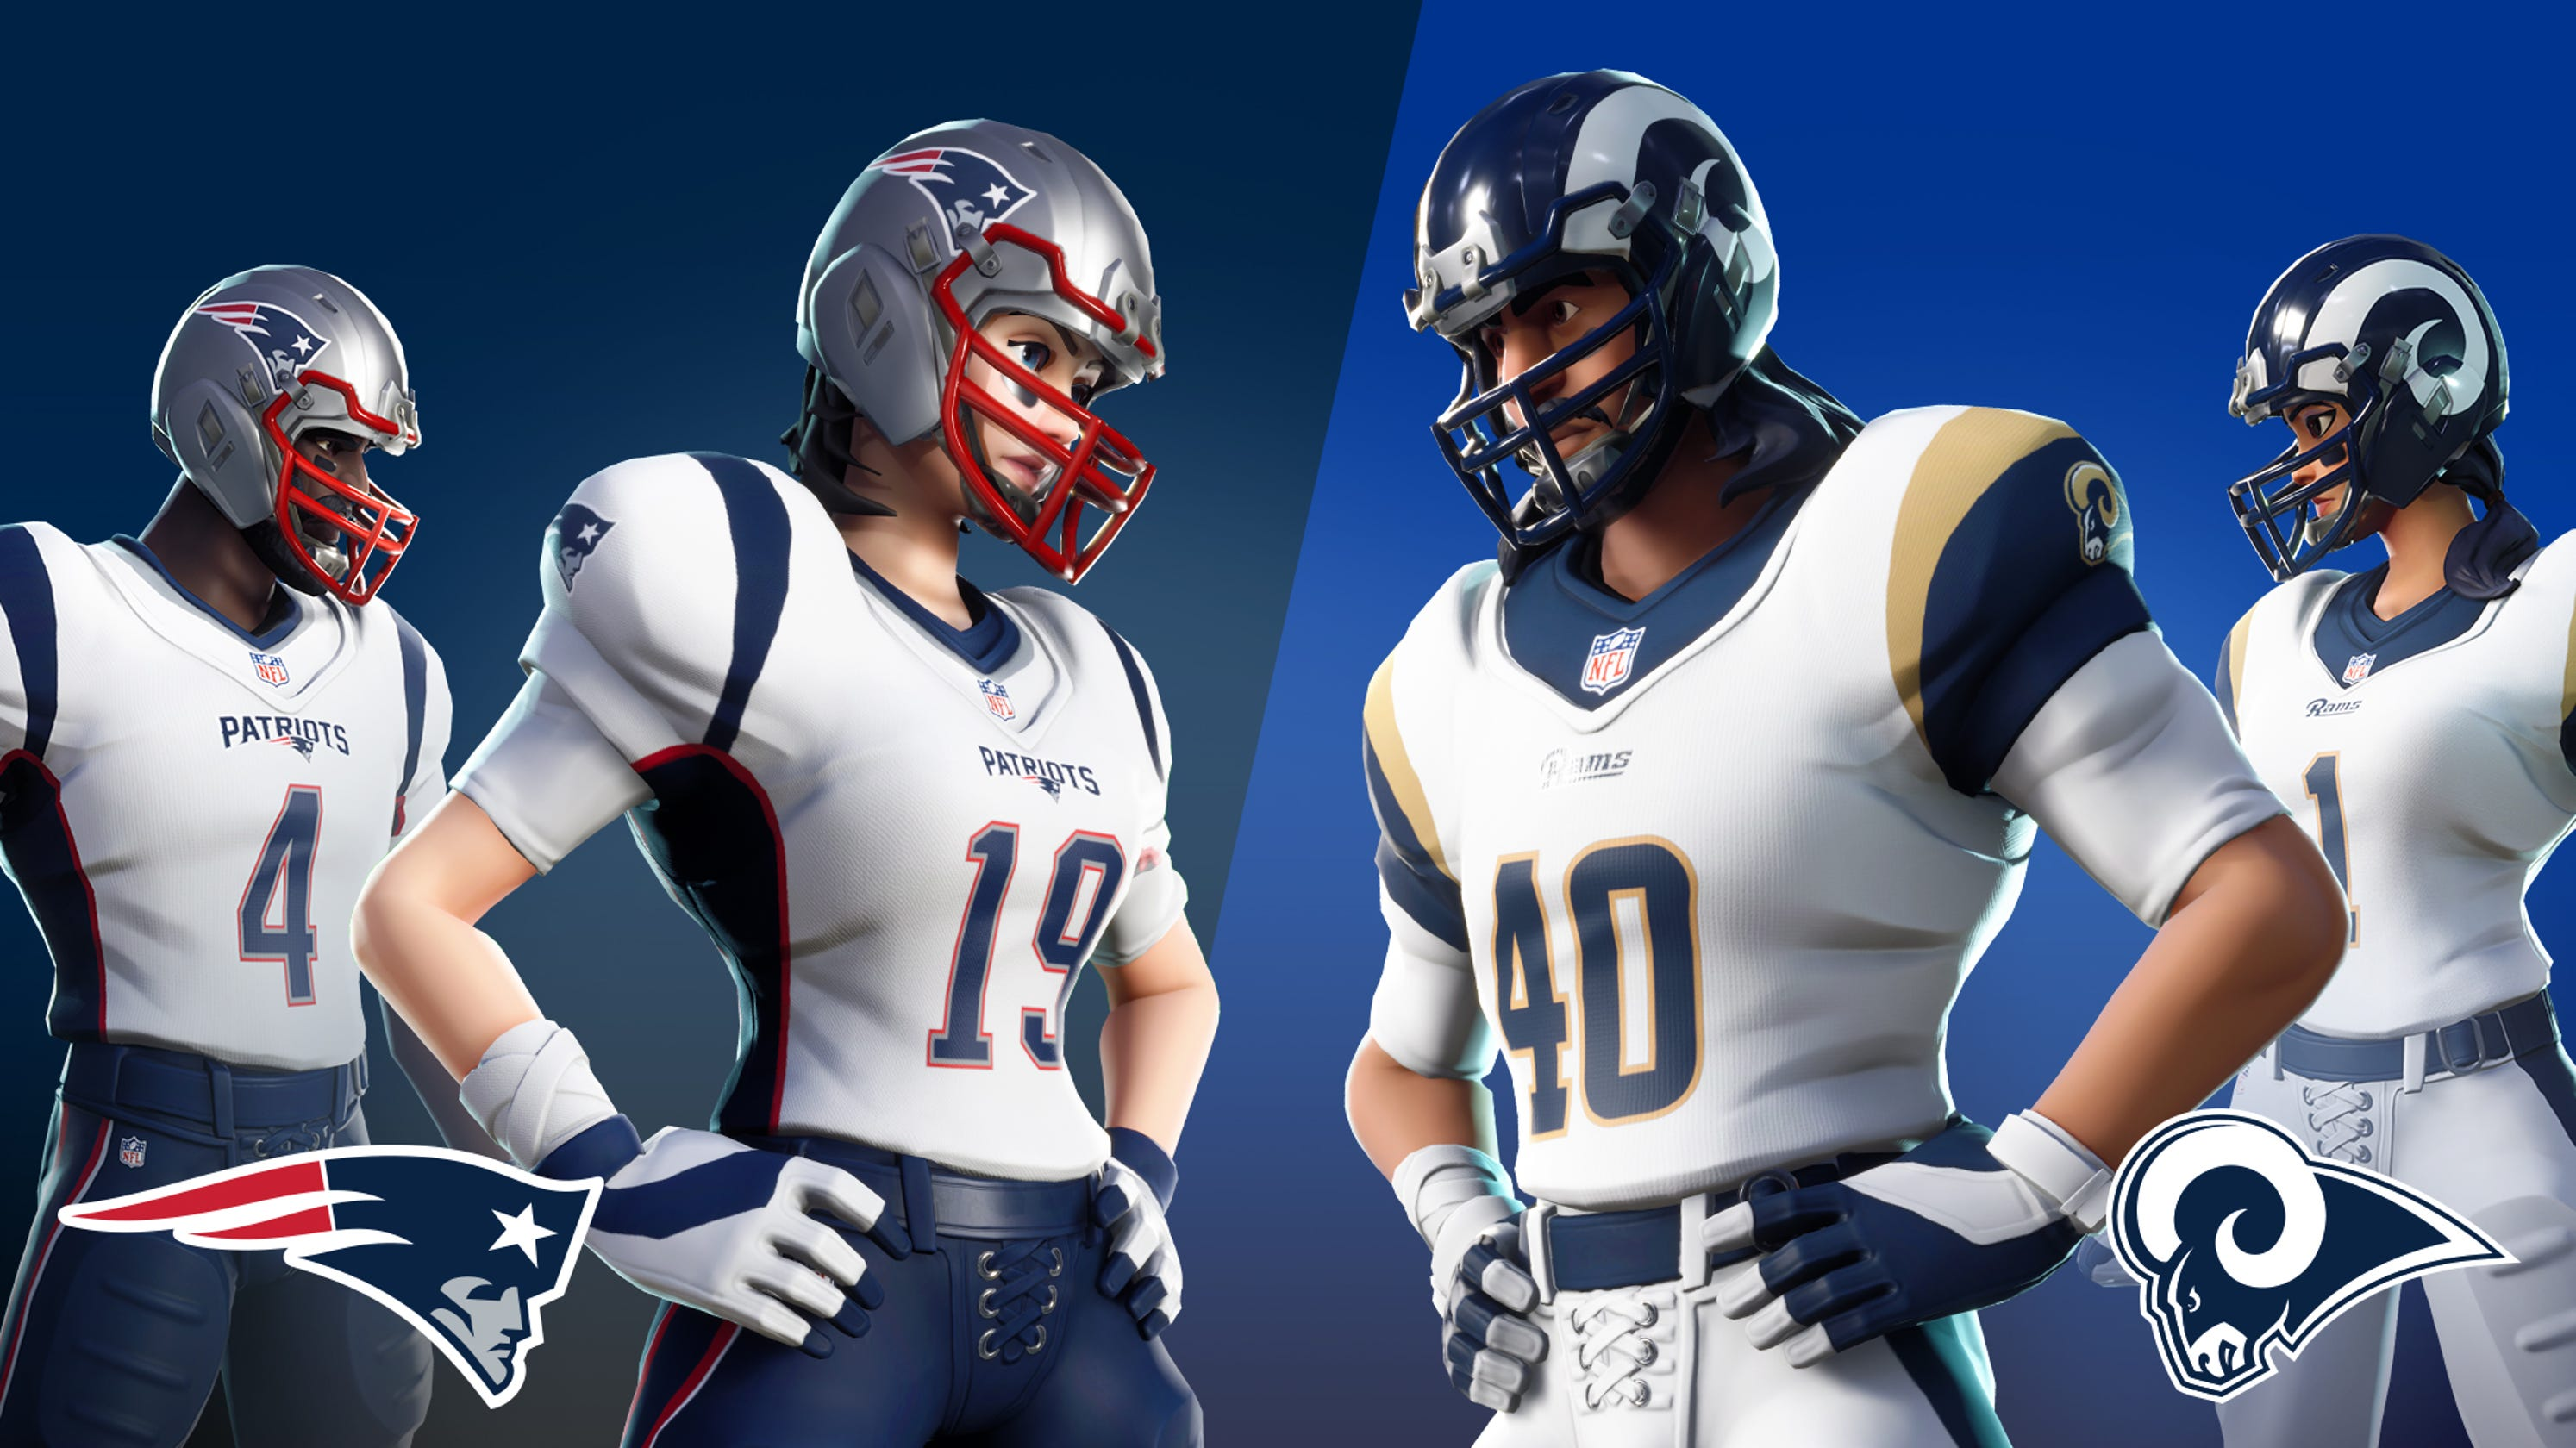 Fortnite  kicks off Super Bowl weekend with return of NFL outfits 5e8dc29f0